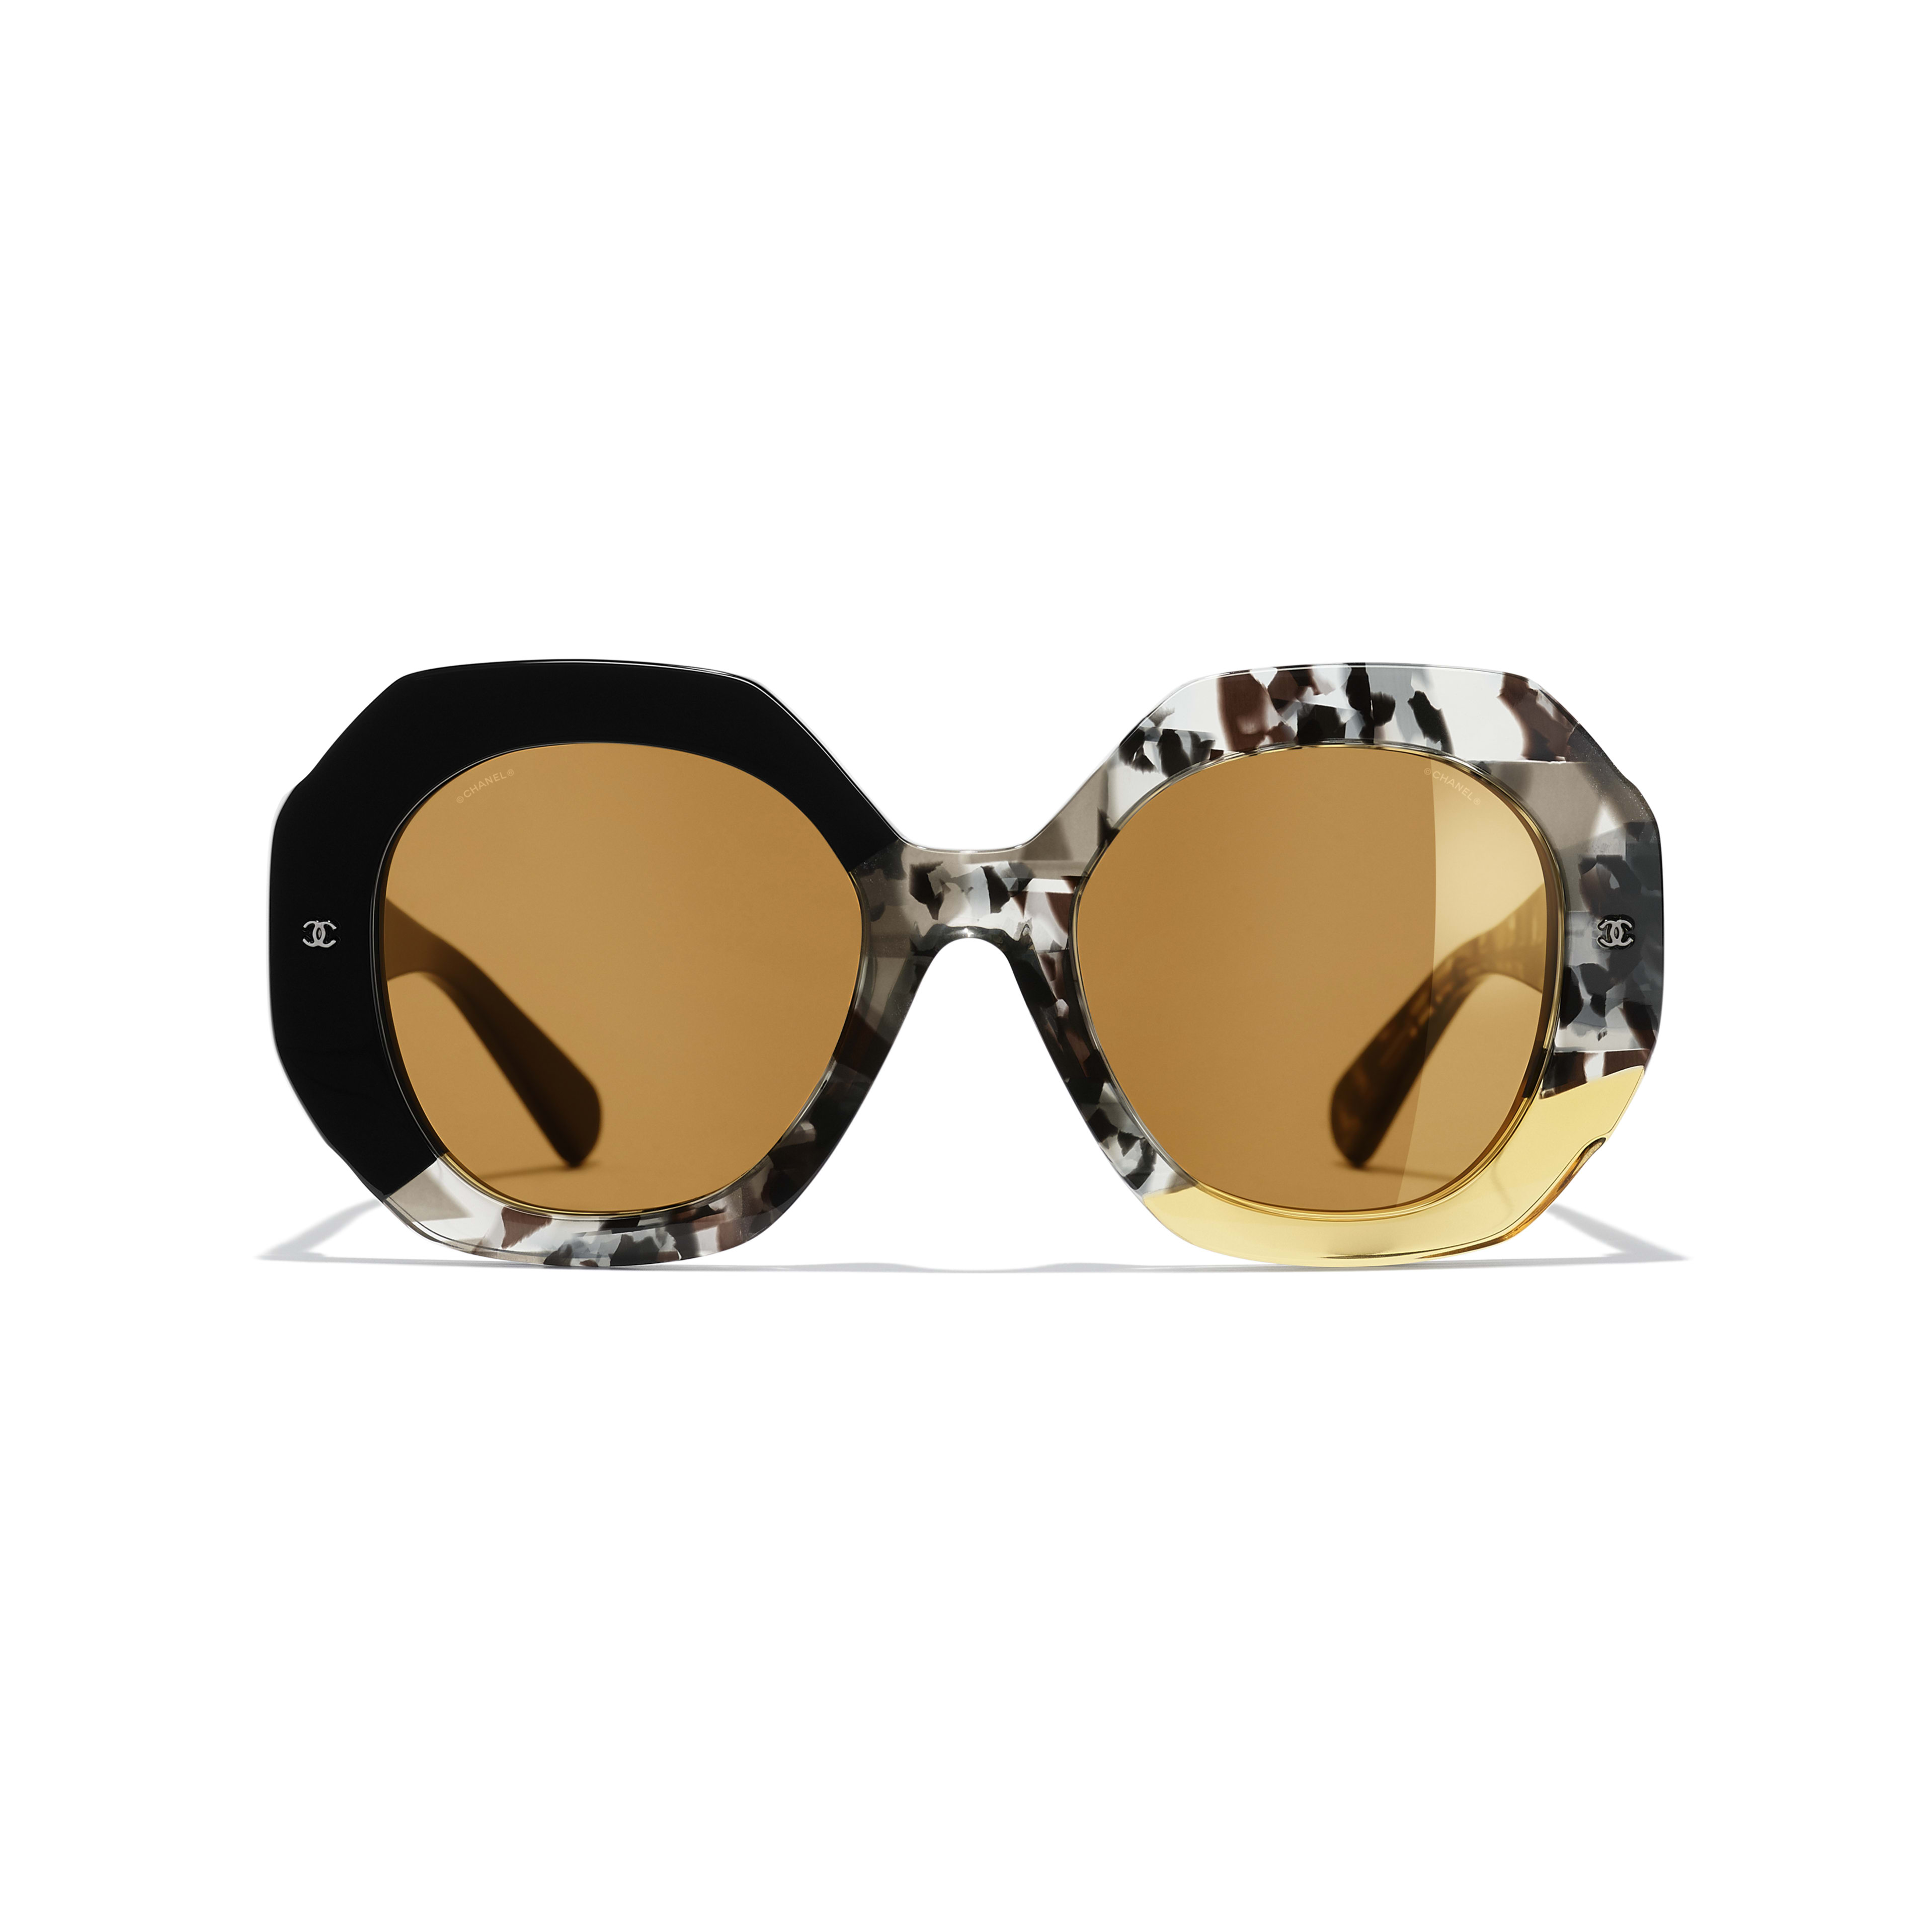 Round Sunglasses - Black, Gray & Yellow - Acetate - Alternative view - see full sized version